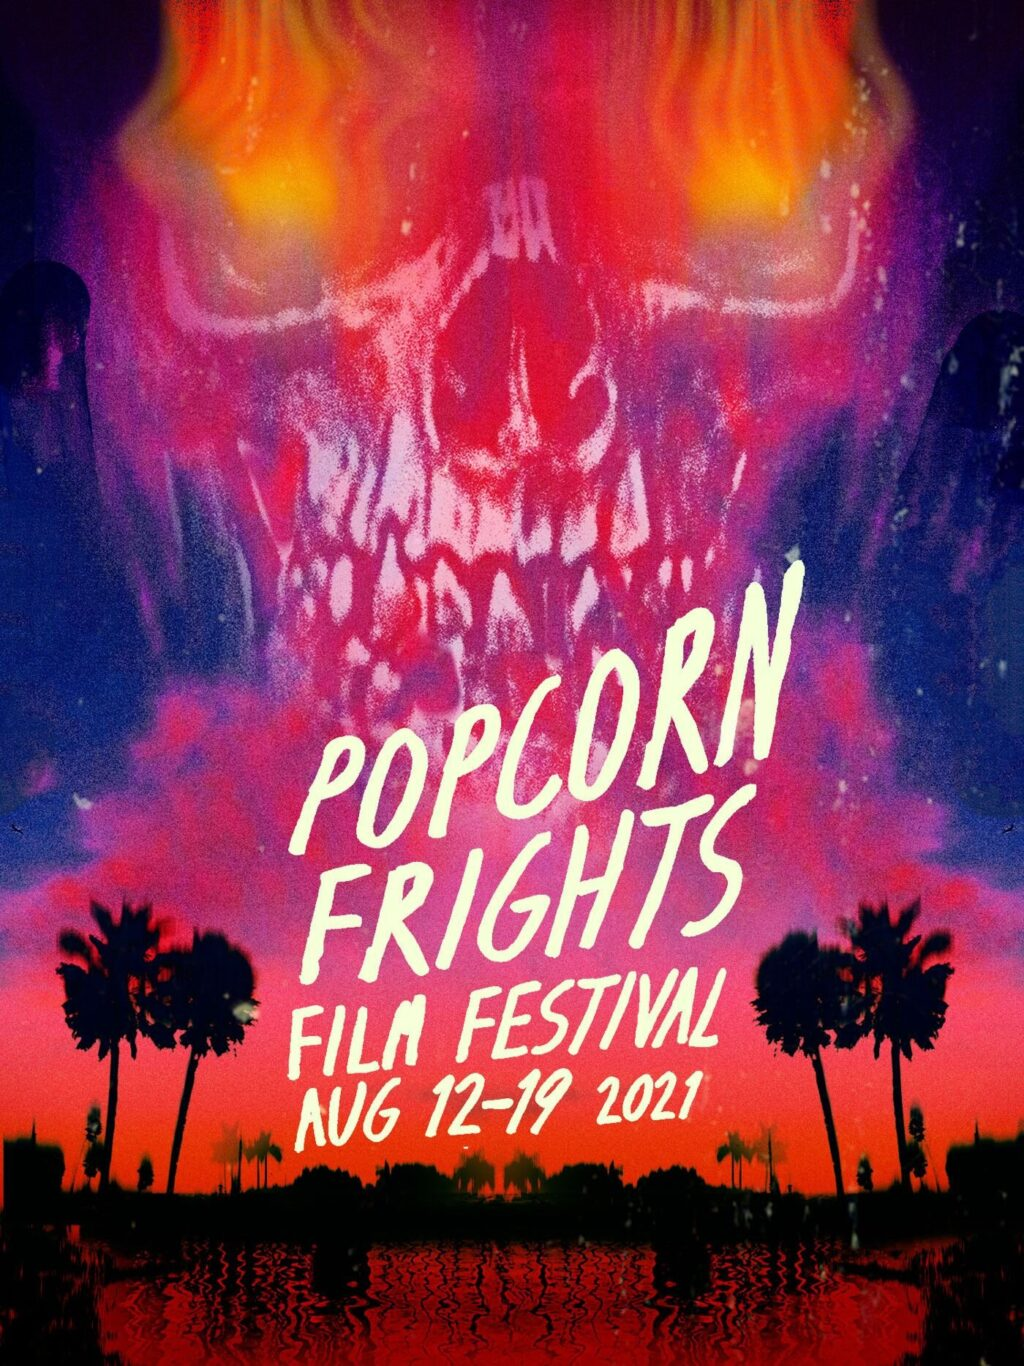 POPCORN FRIGHTS 2021 1024x1366 - POPCORN FRIGHTS 2021 Announces Their Second Wave of Sickening Cinema